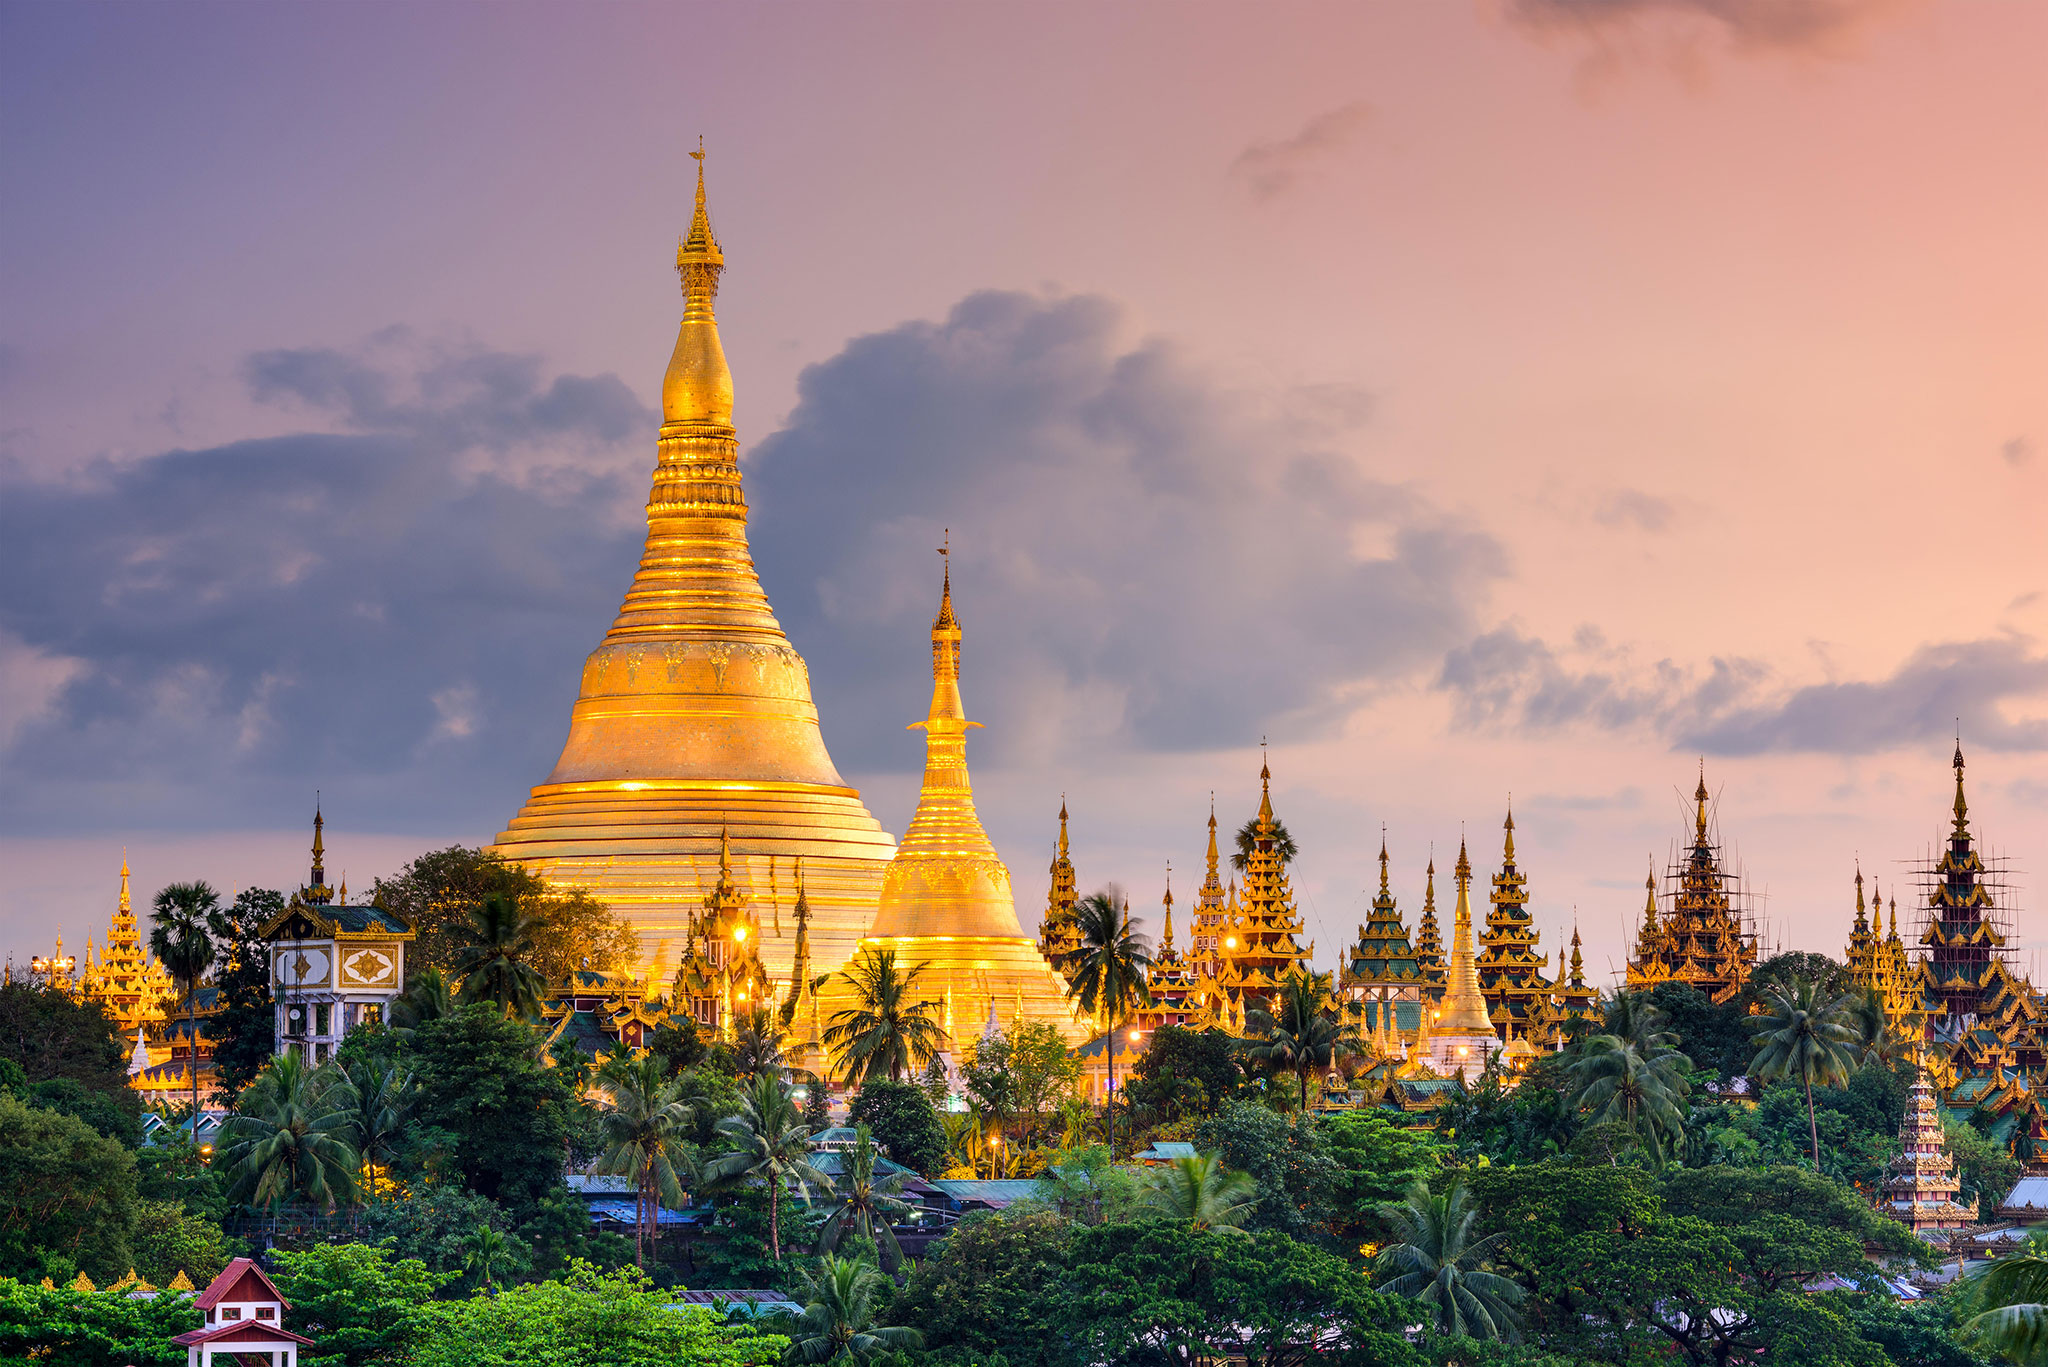 yangon - The former colonial capital of Myanmar, Yangon is an exciting melting-pot of culture, arts, religion and politics.